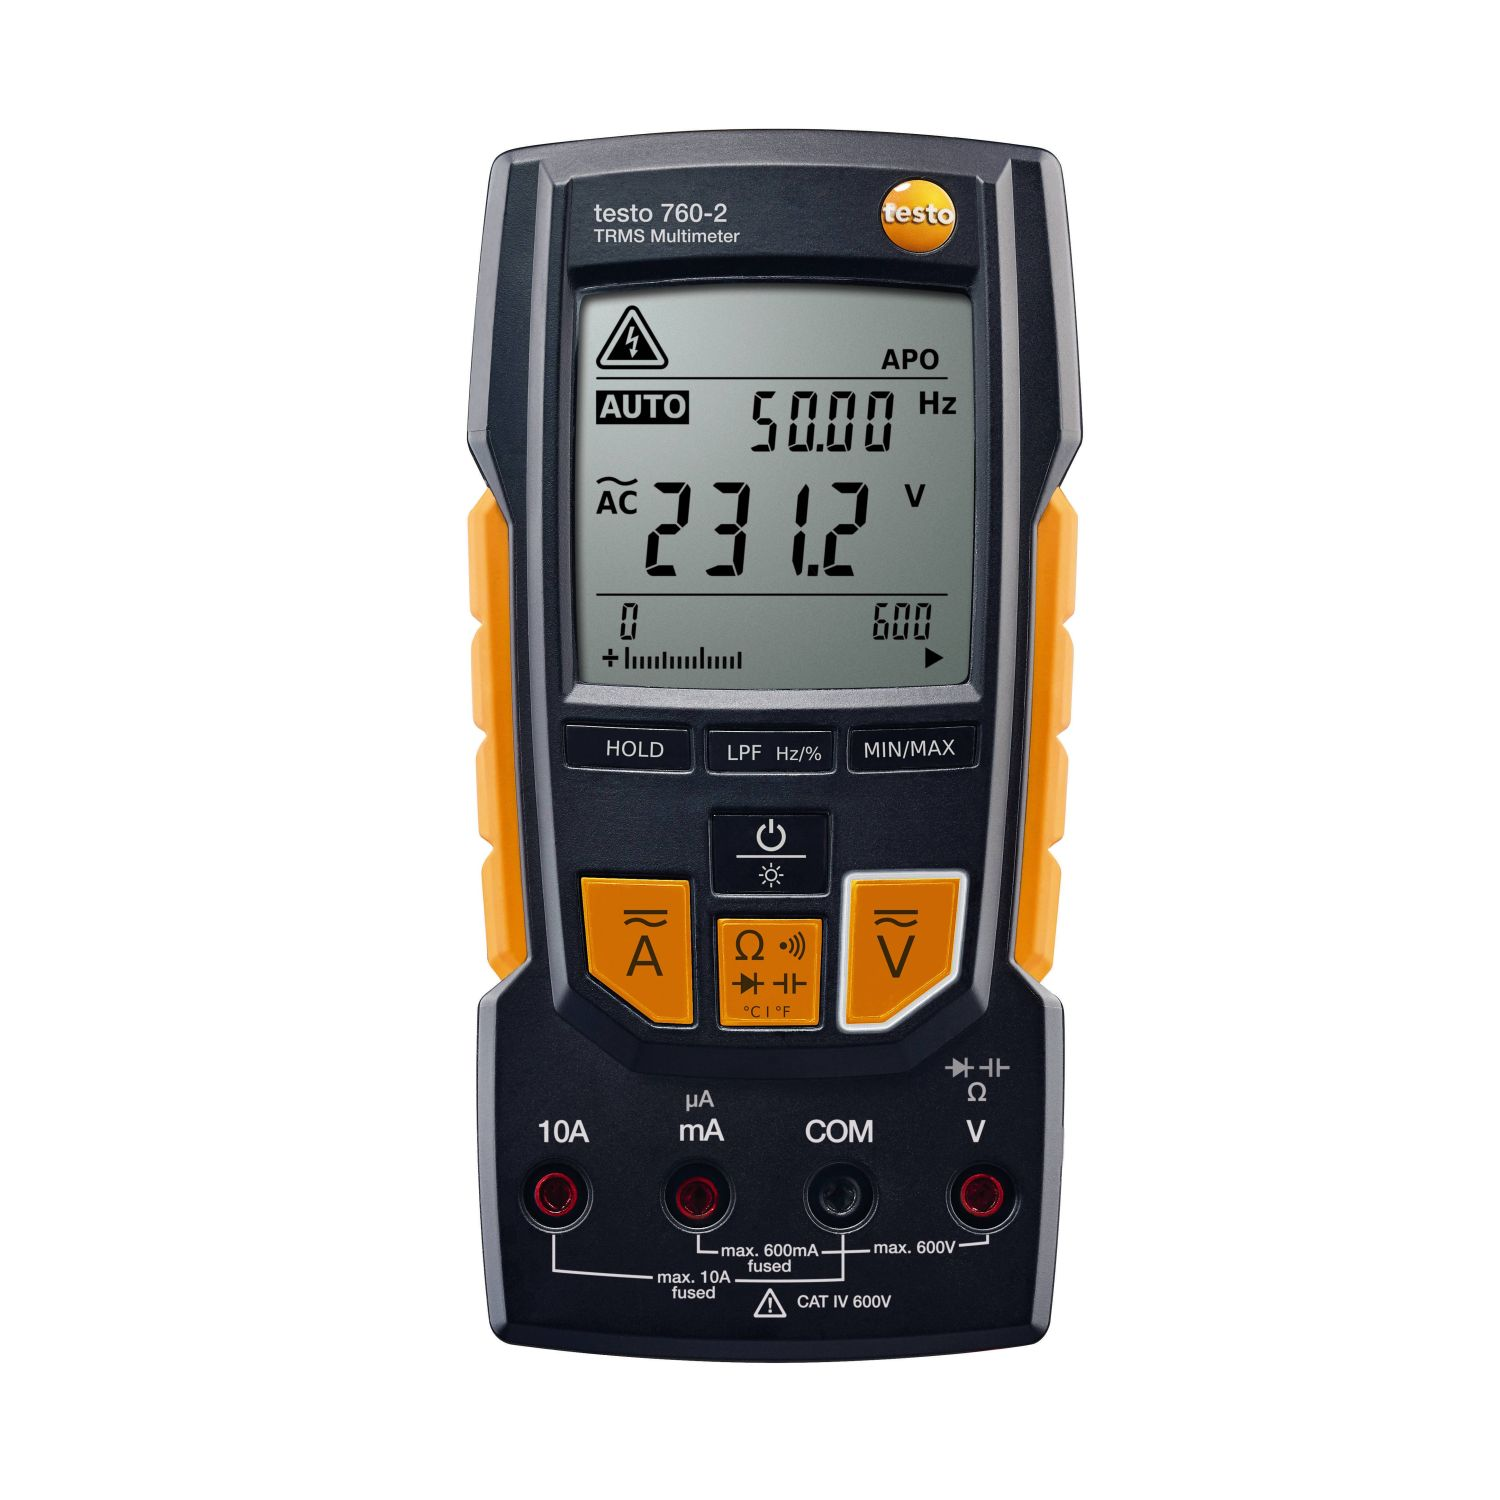 testo 760-2 Multimètre digital